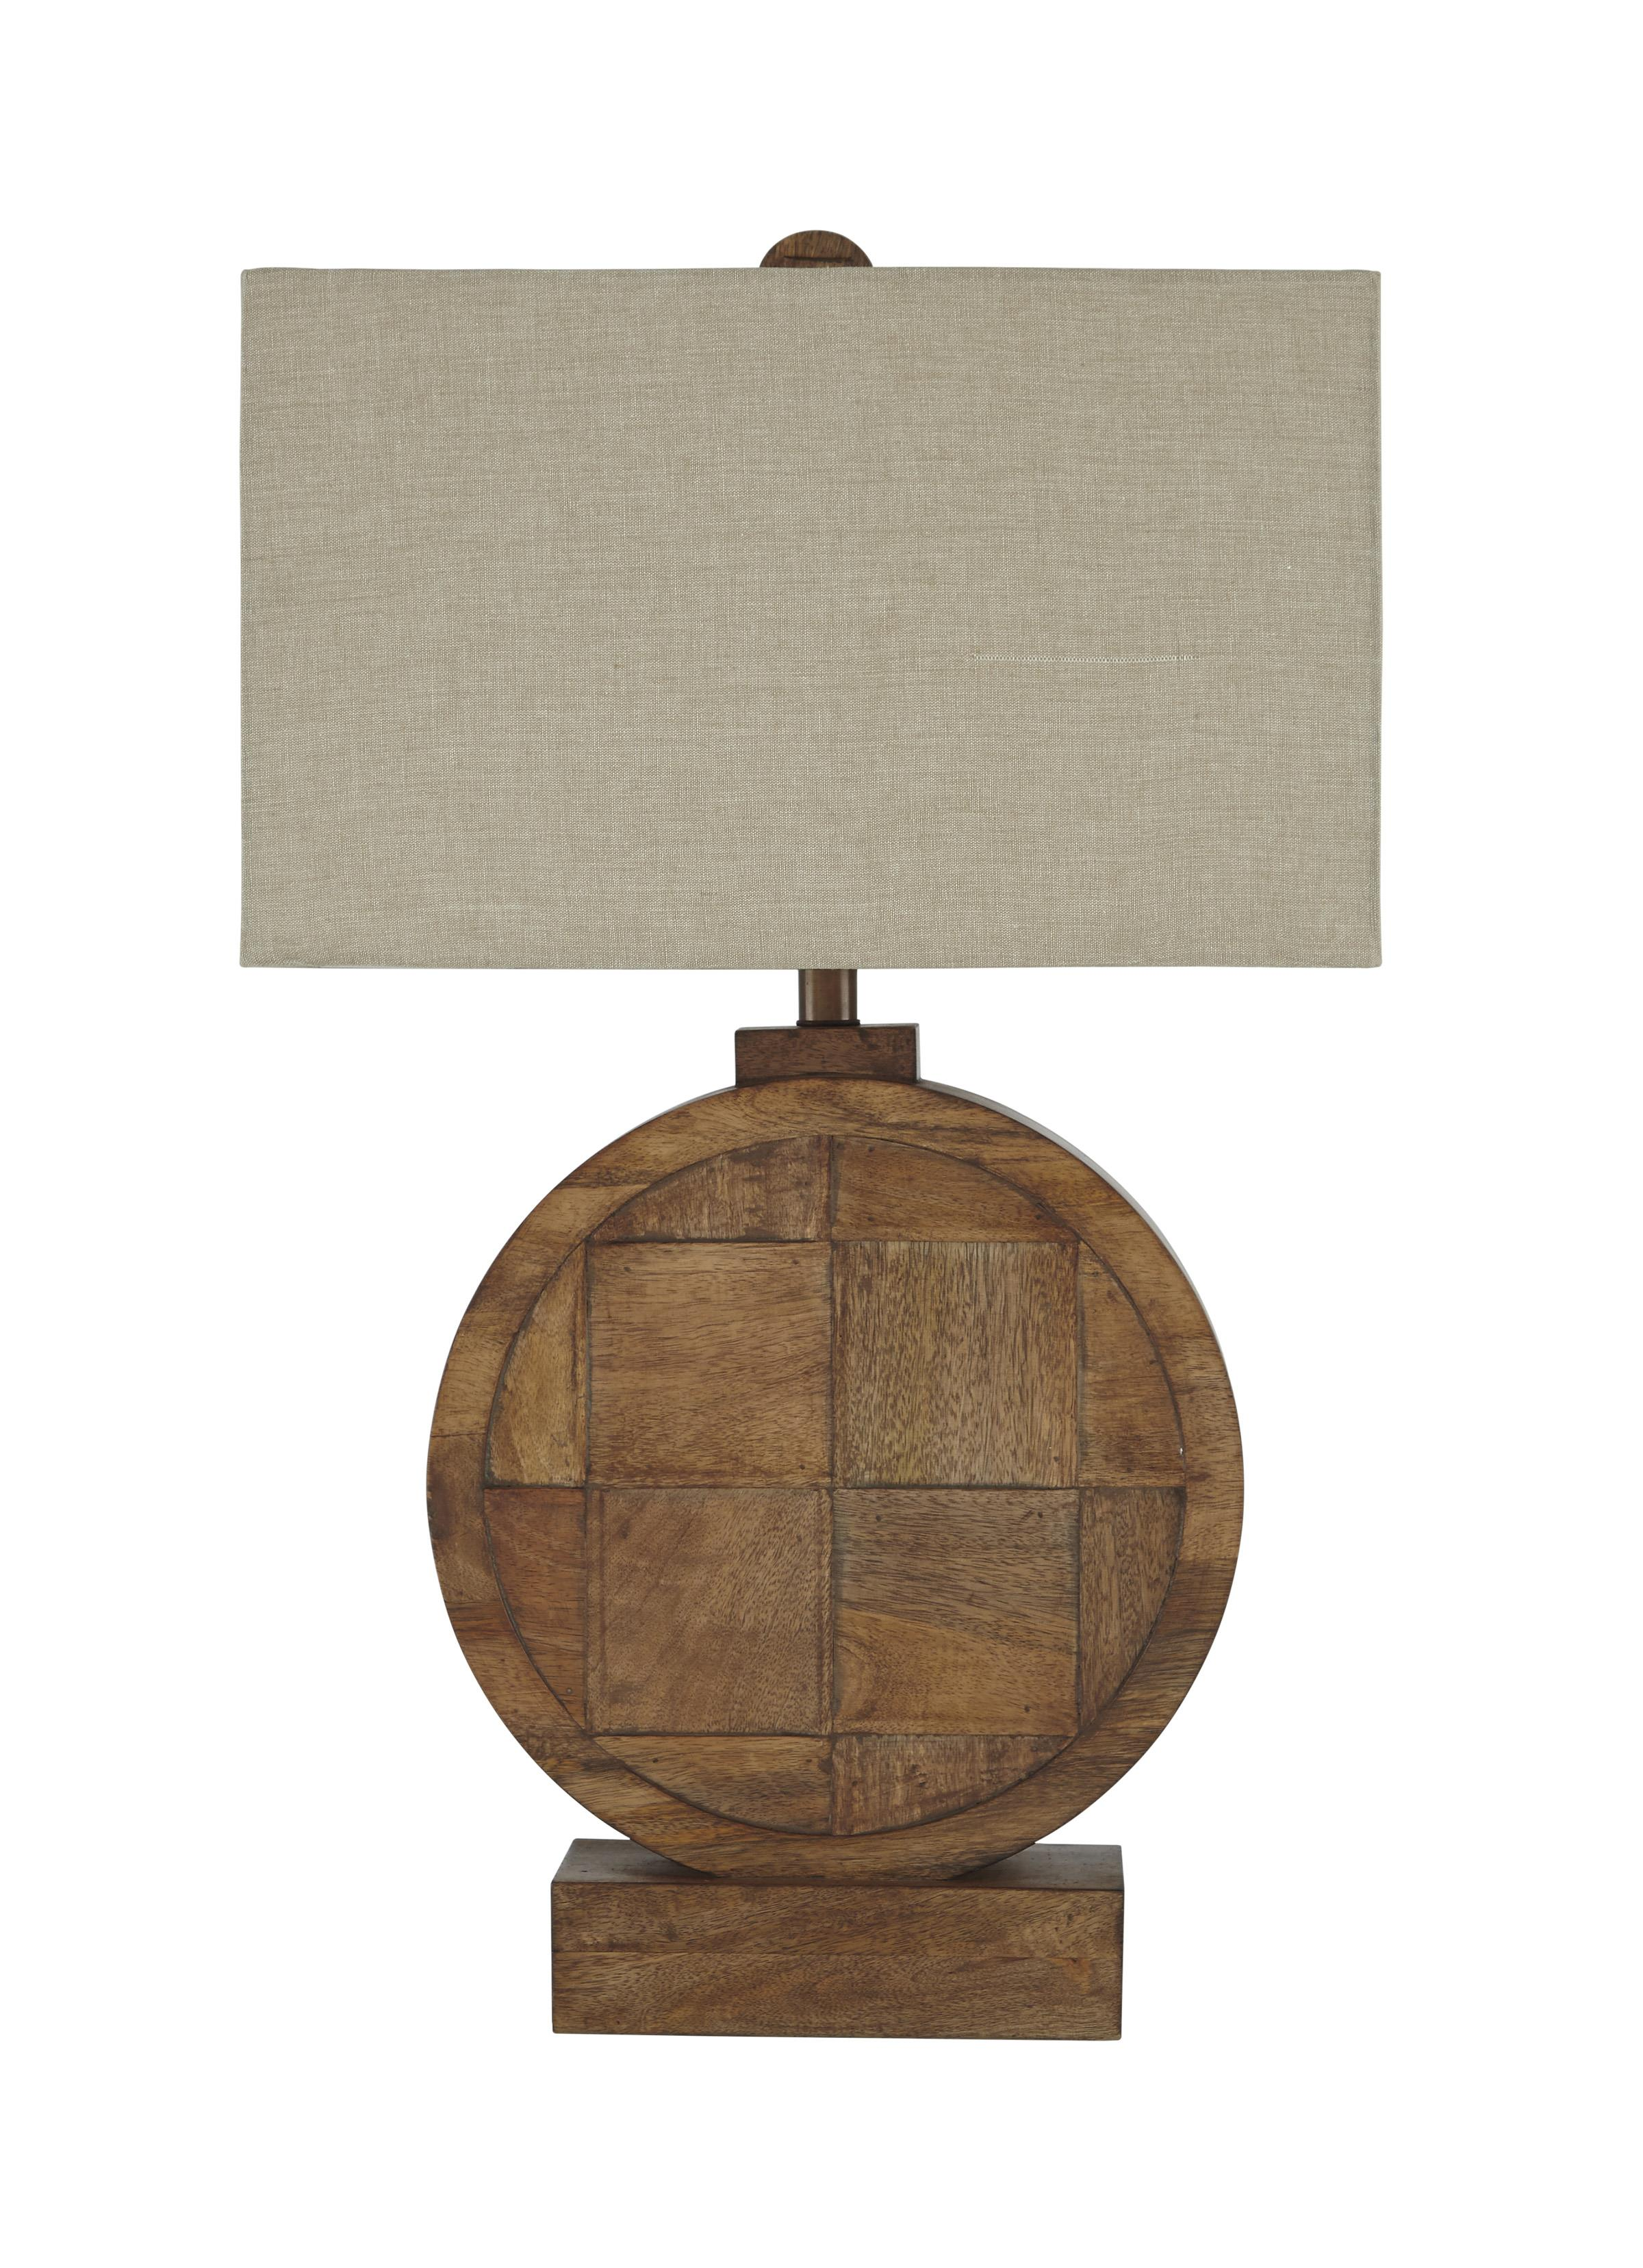 Signature Design by Ashley Lamps - Contemporary Shonalee Natural/Brown Wood Table Lamp - Item Number: L327114